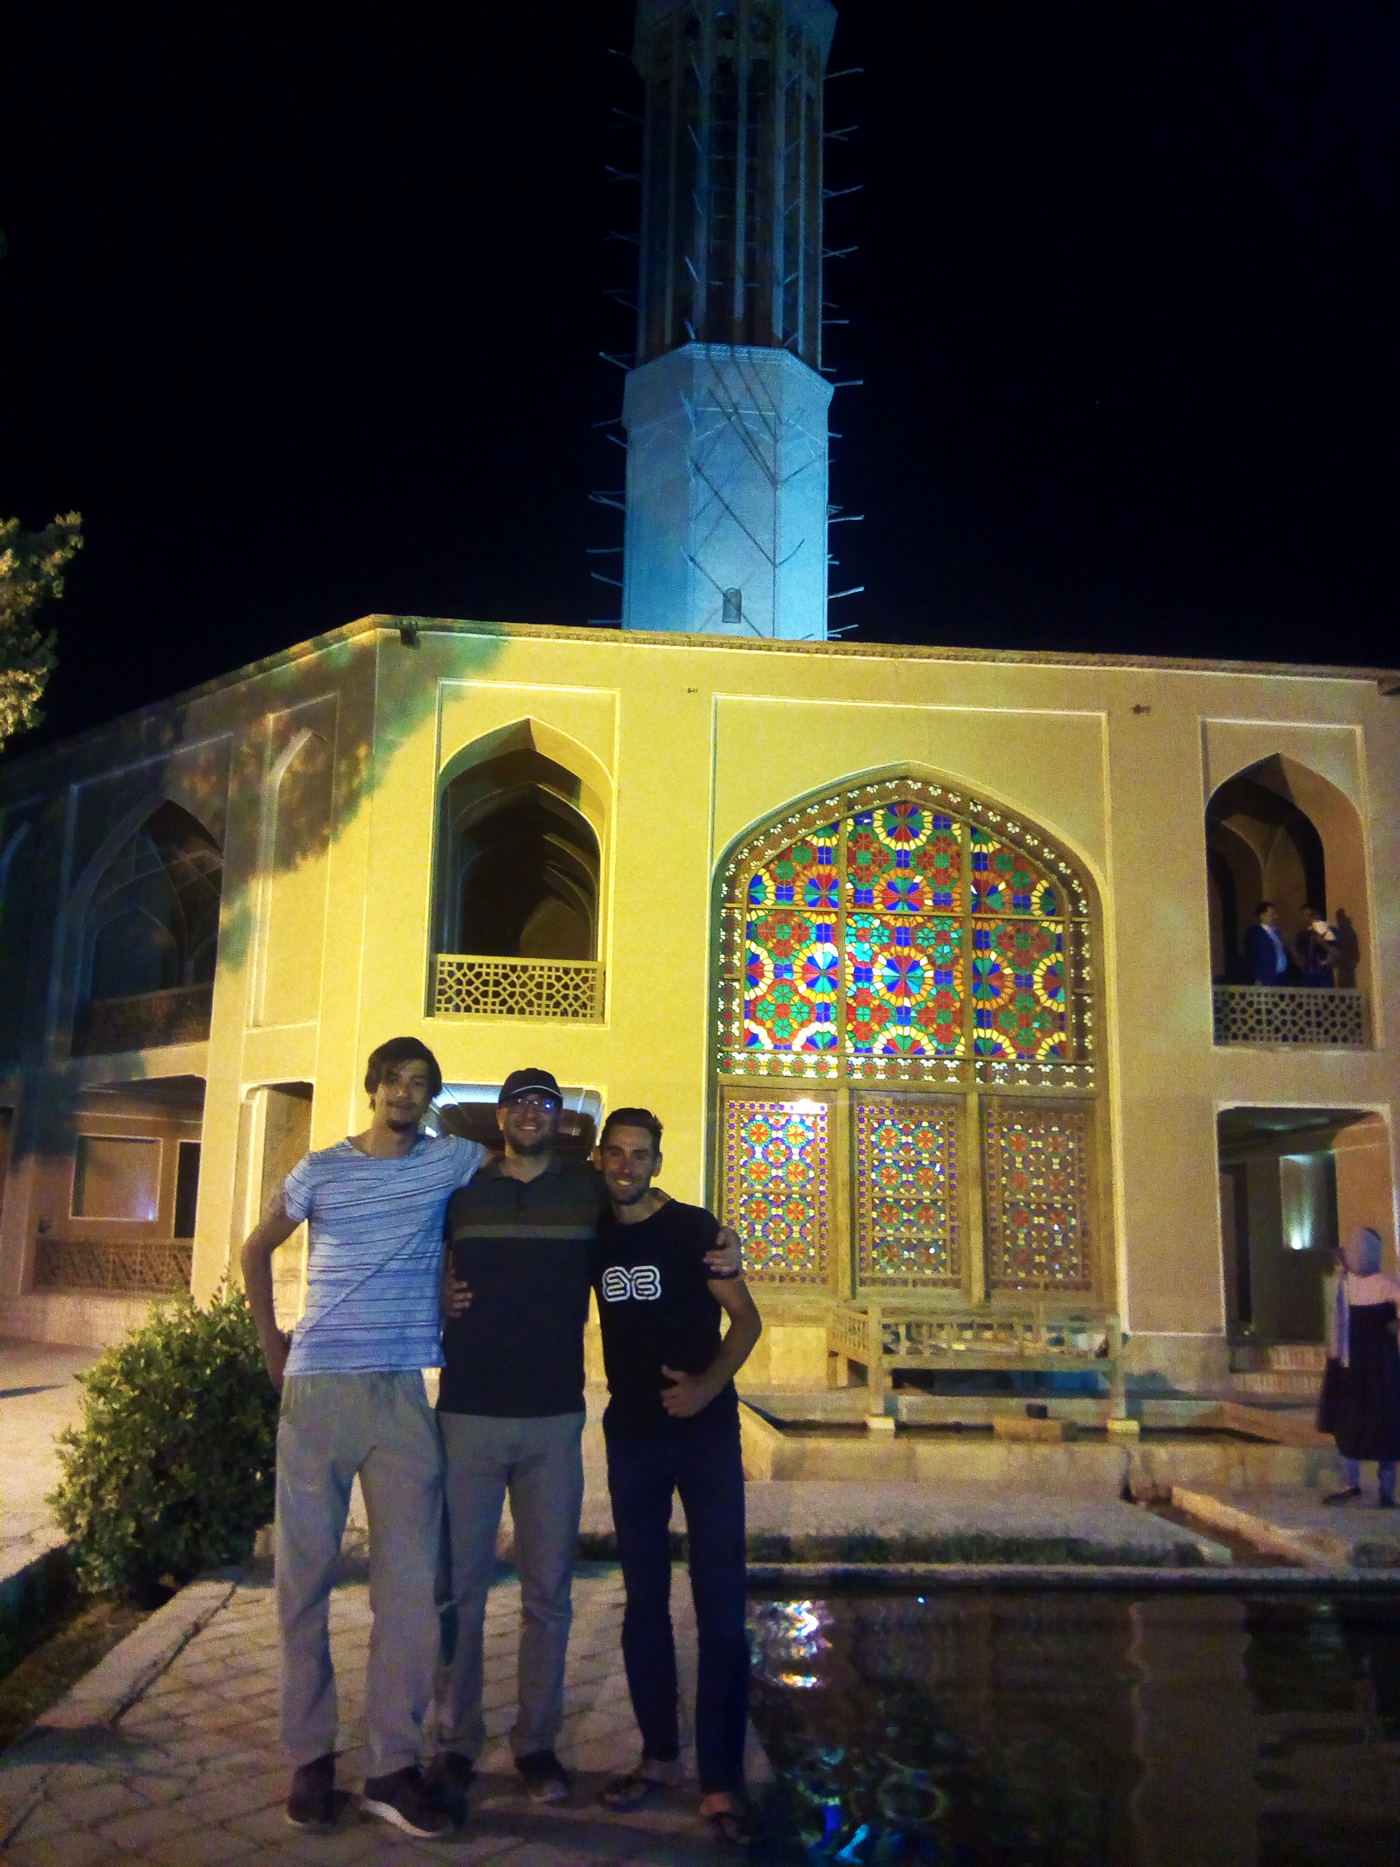 Bike trip, cross Iran by bike, the highest bâdgir in the world in the garden of Dowlat Abad in Yazd. Cycling travel, biketouring, cycling Iran, the world's tallest badgir in Dowlat Abad Garden in Yazd.